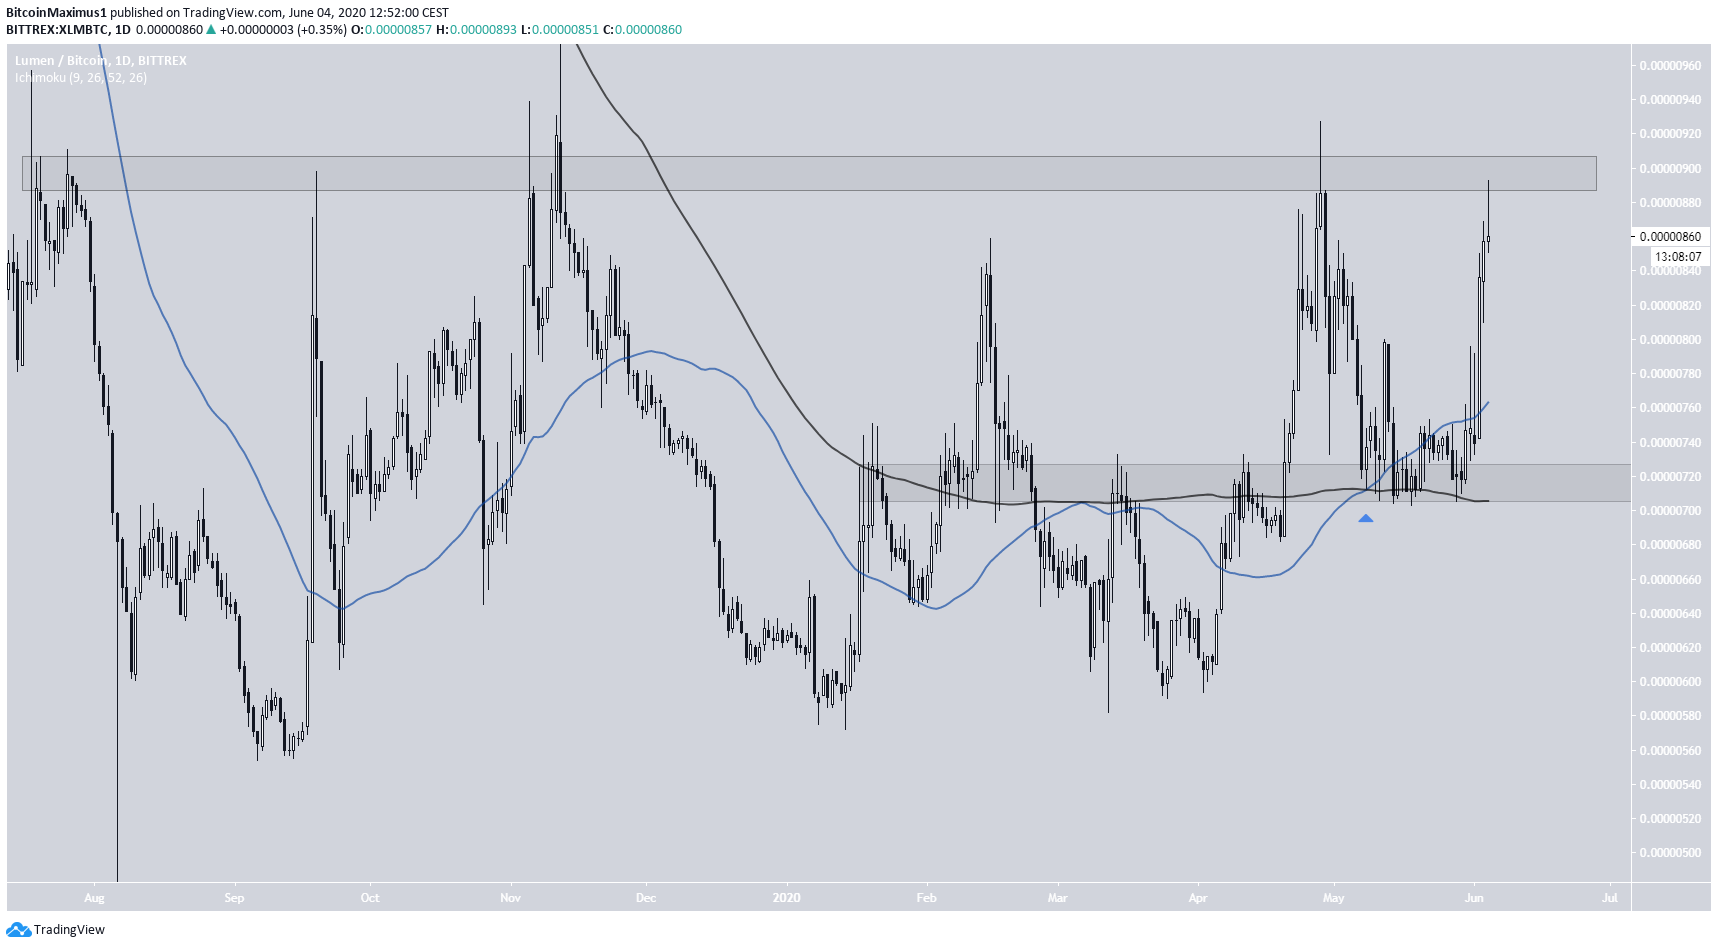 XLM Daily Time-frame